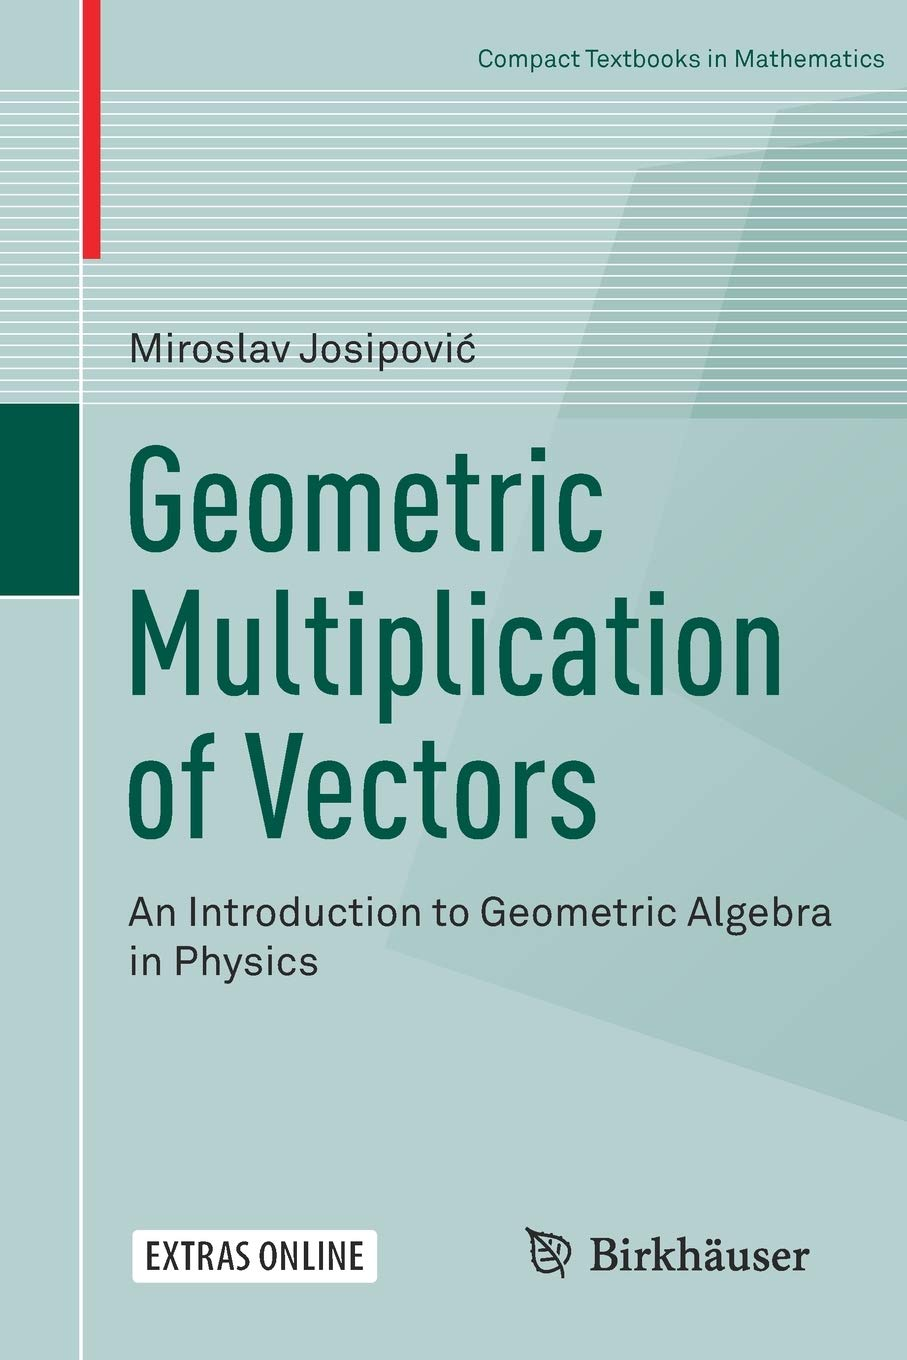 Image OfGeometric Multiplication Of Vectors: An Introduction To Geometric Algebra In Physics (Compact Textbooks In Mathematics)